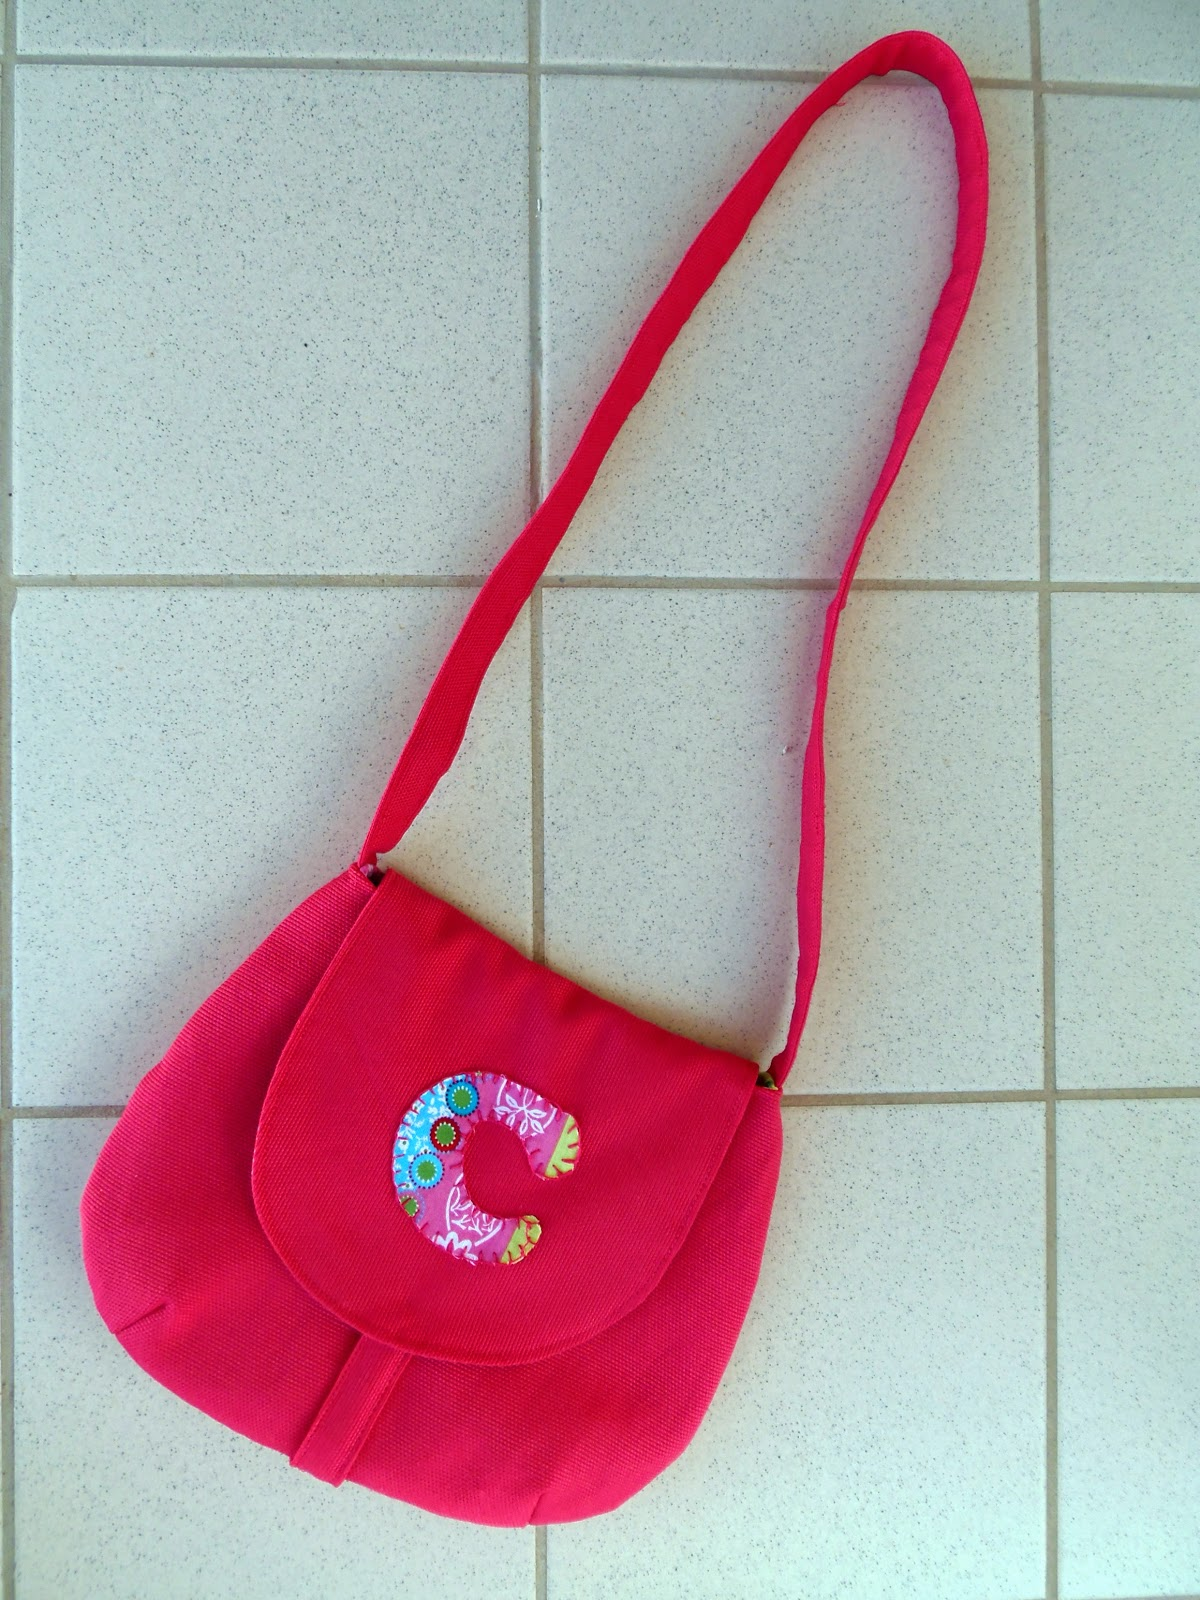 design by me for thi bag for little girls